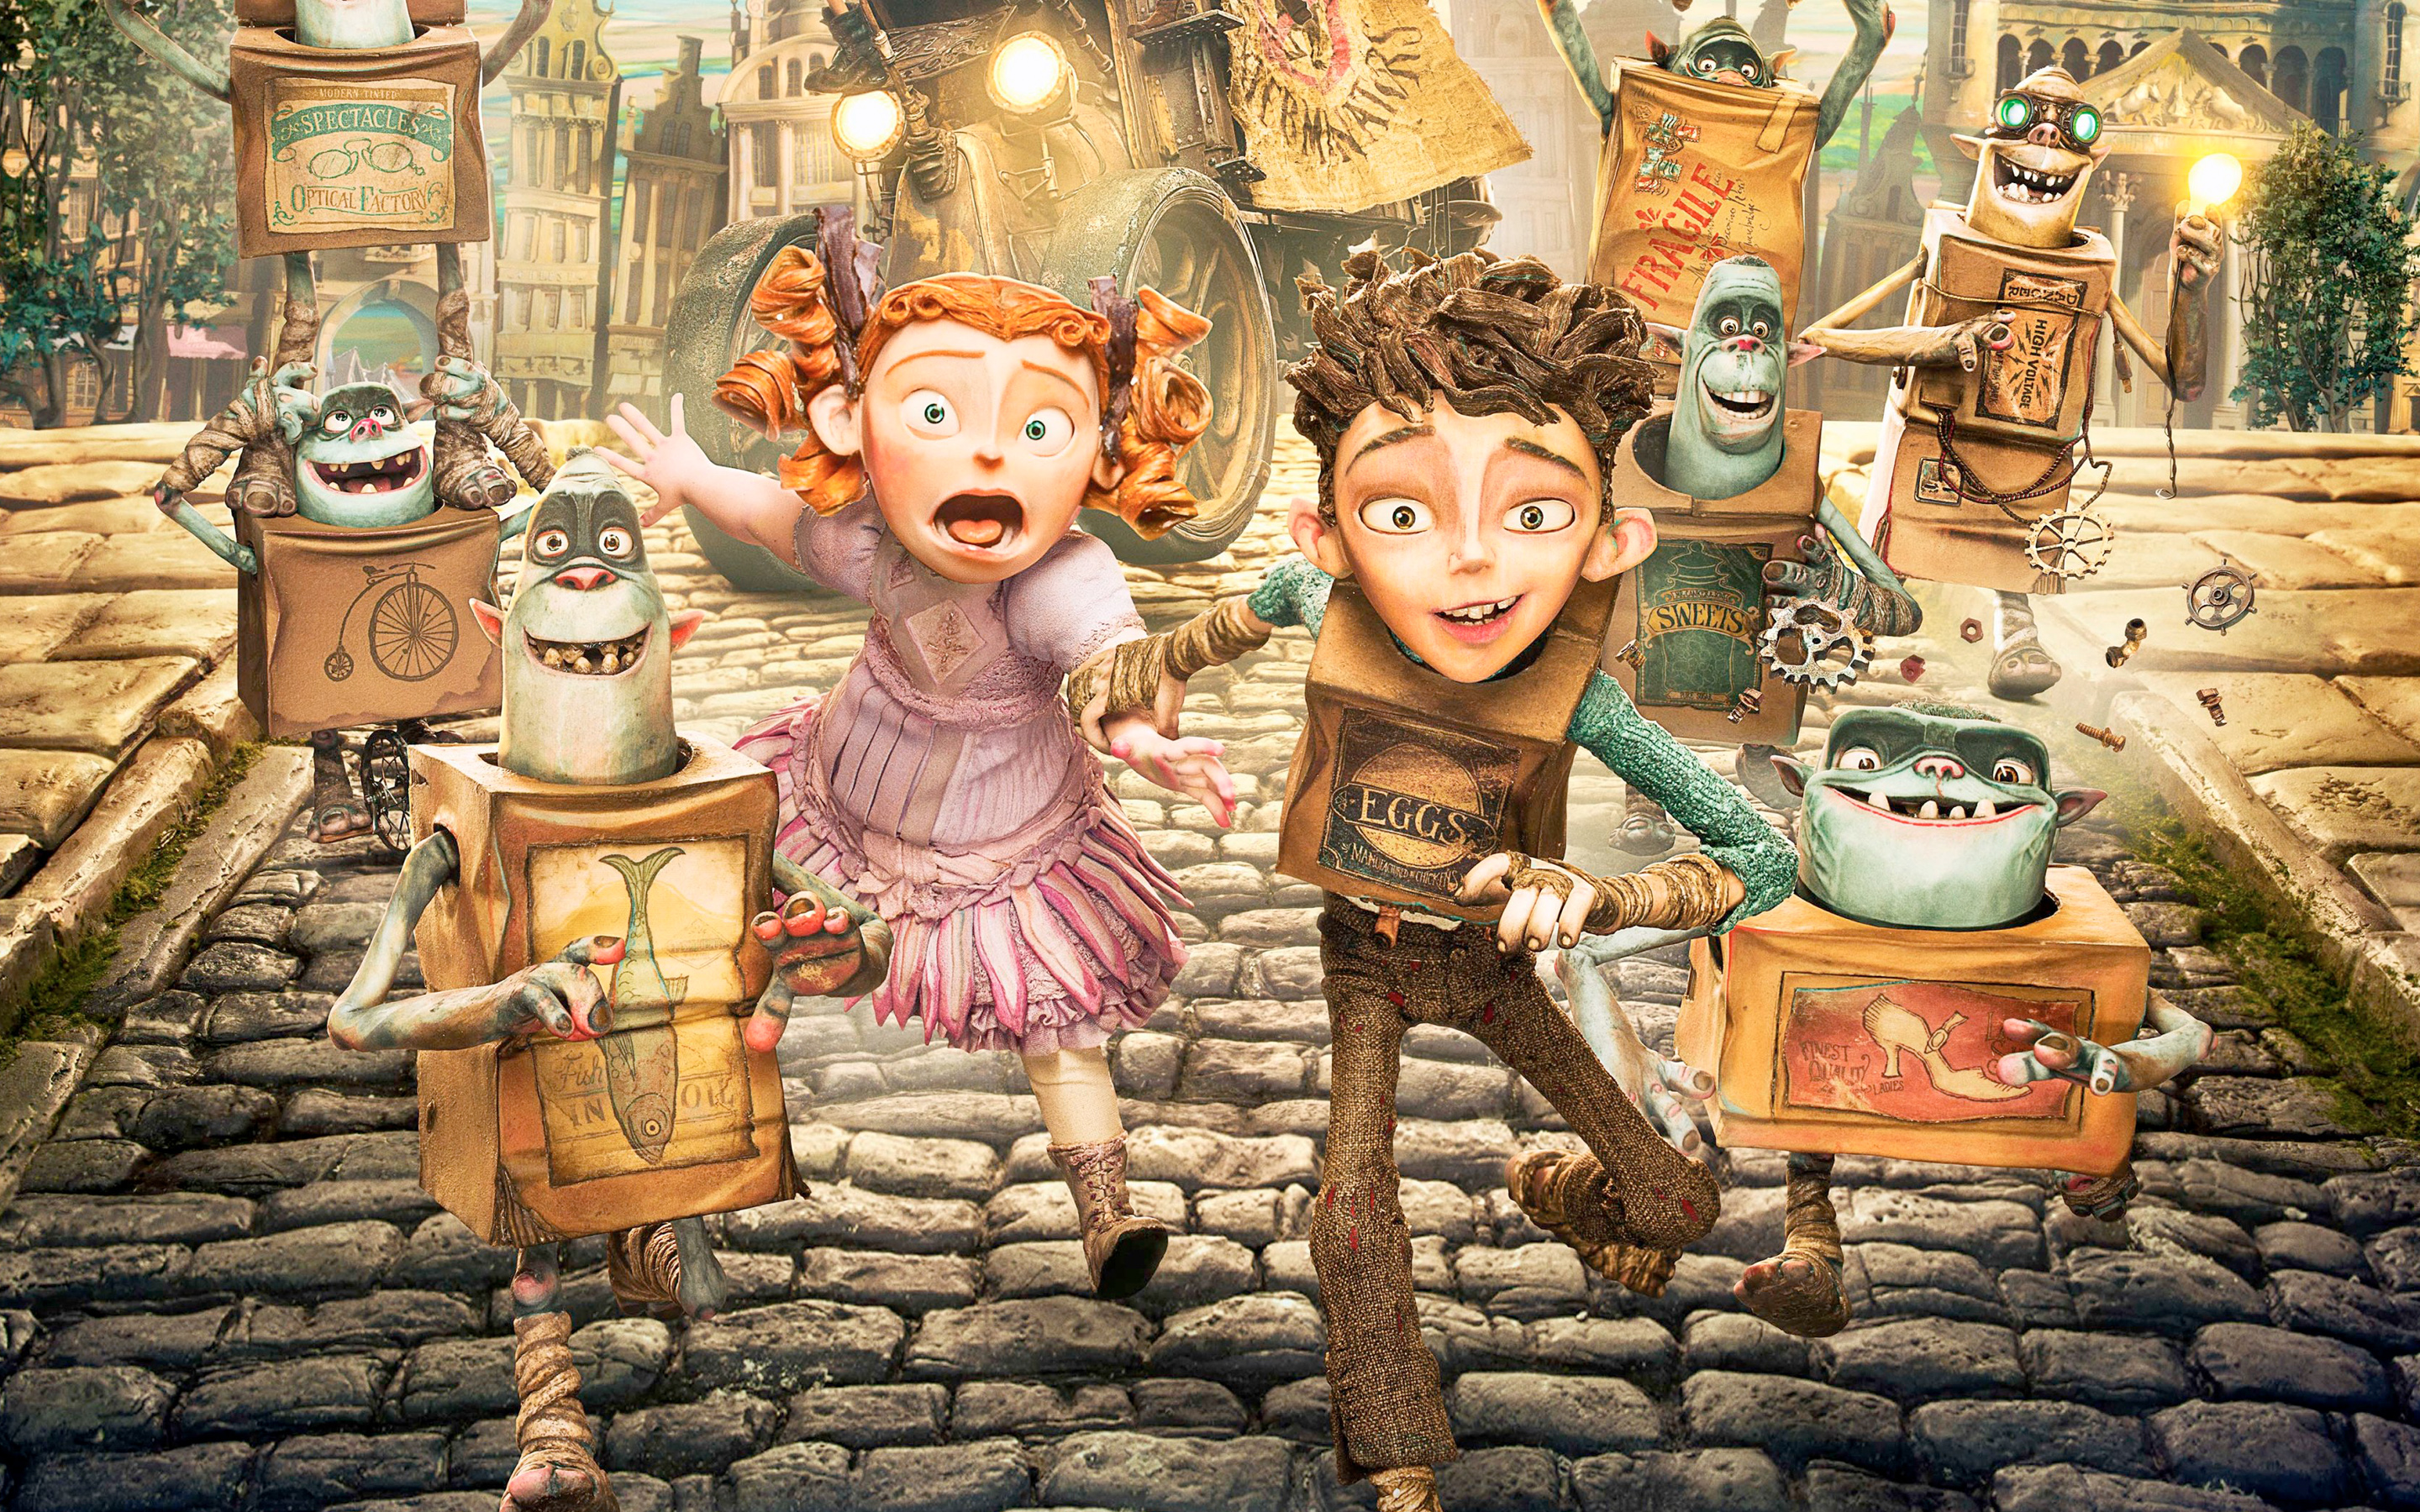 The Boxtrolls Wallpapers and Background Images   stmednet 2880x1800